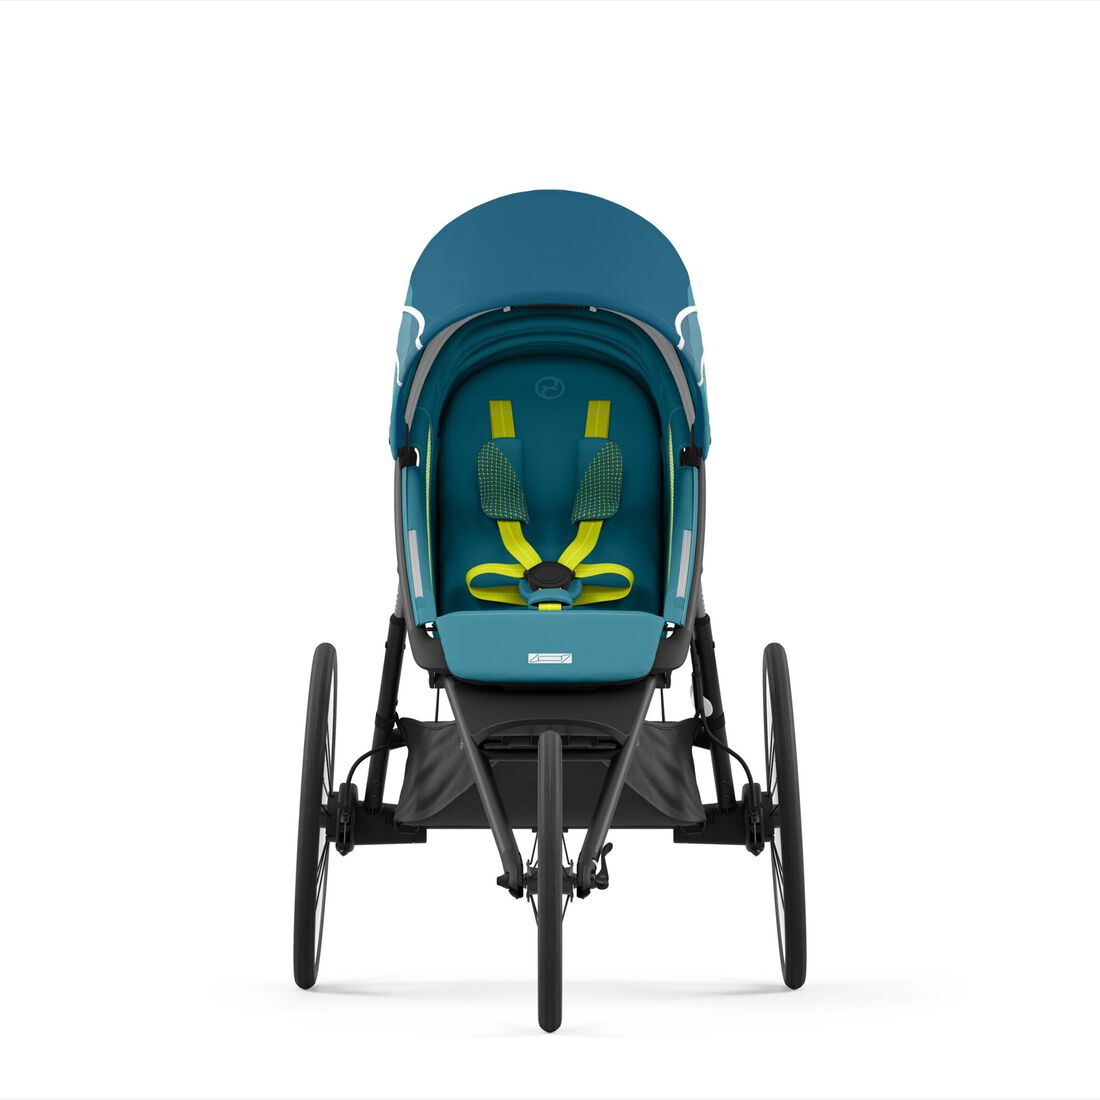 CYBEX Avi Seat Pack - Maliblue in Maliblue large image number 3